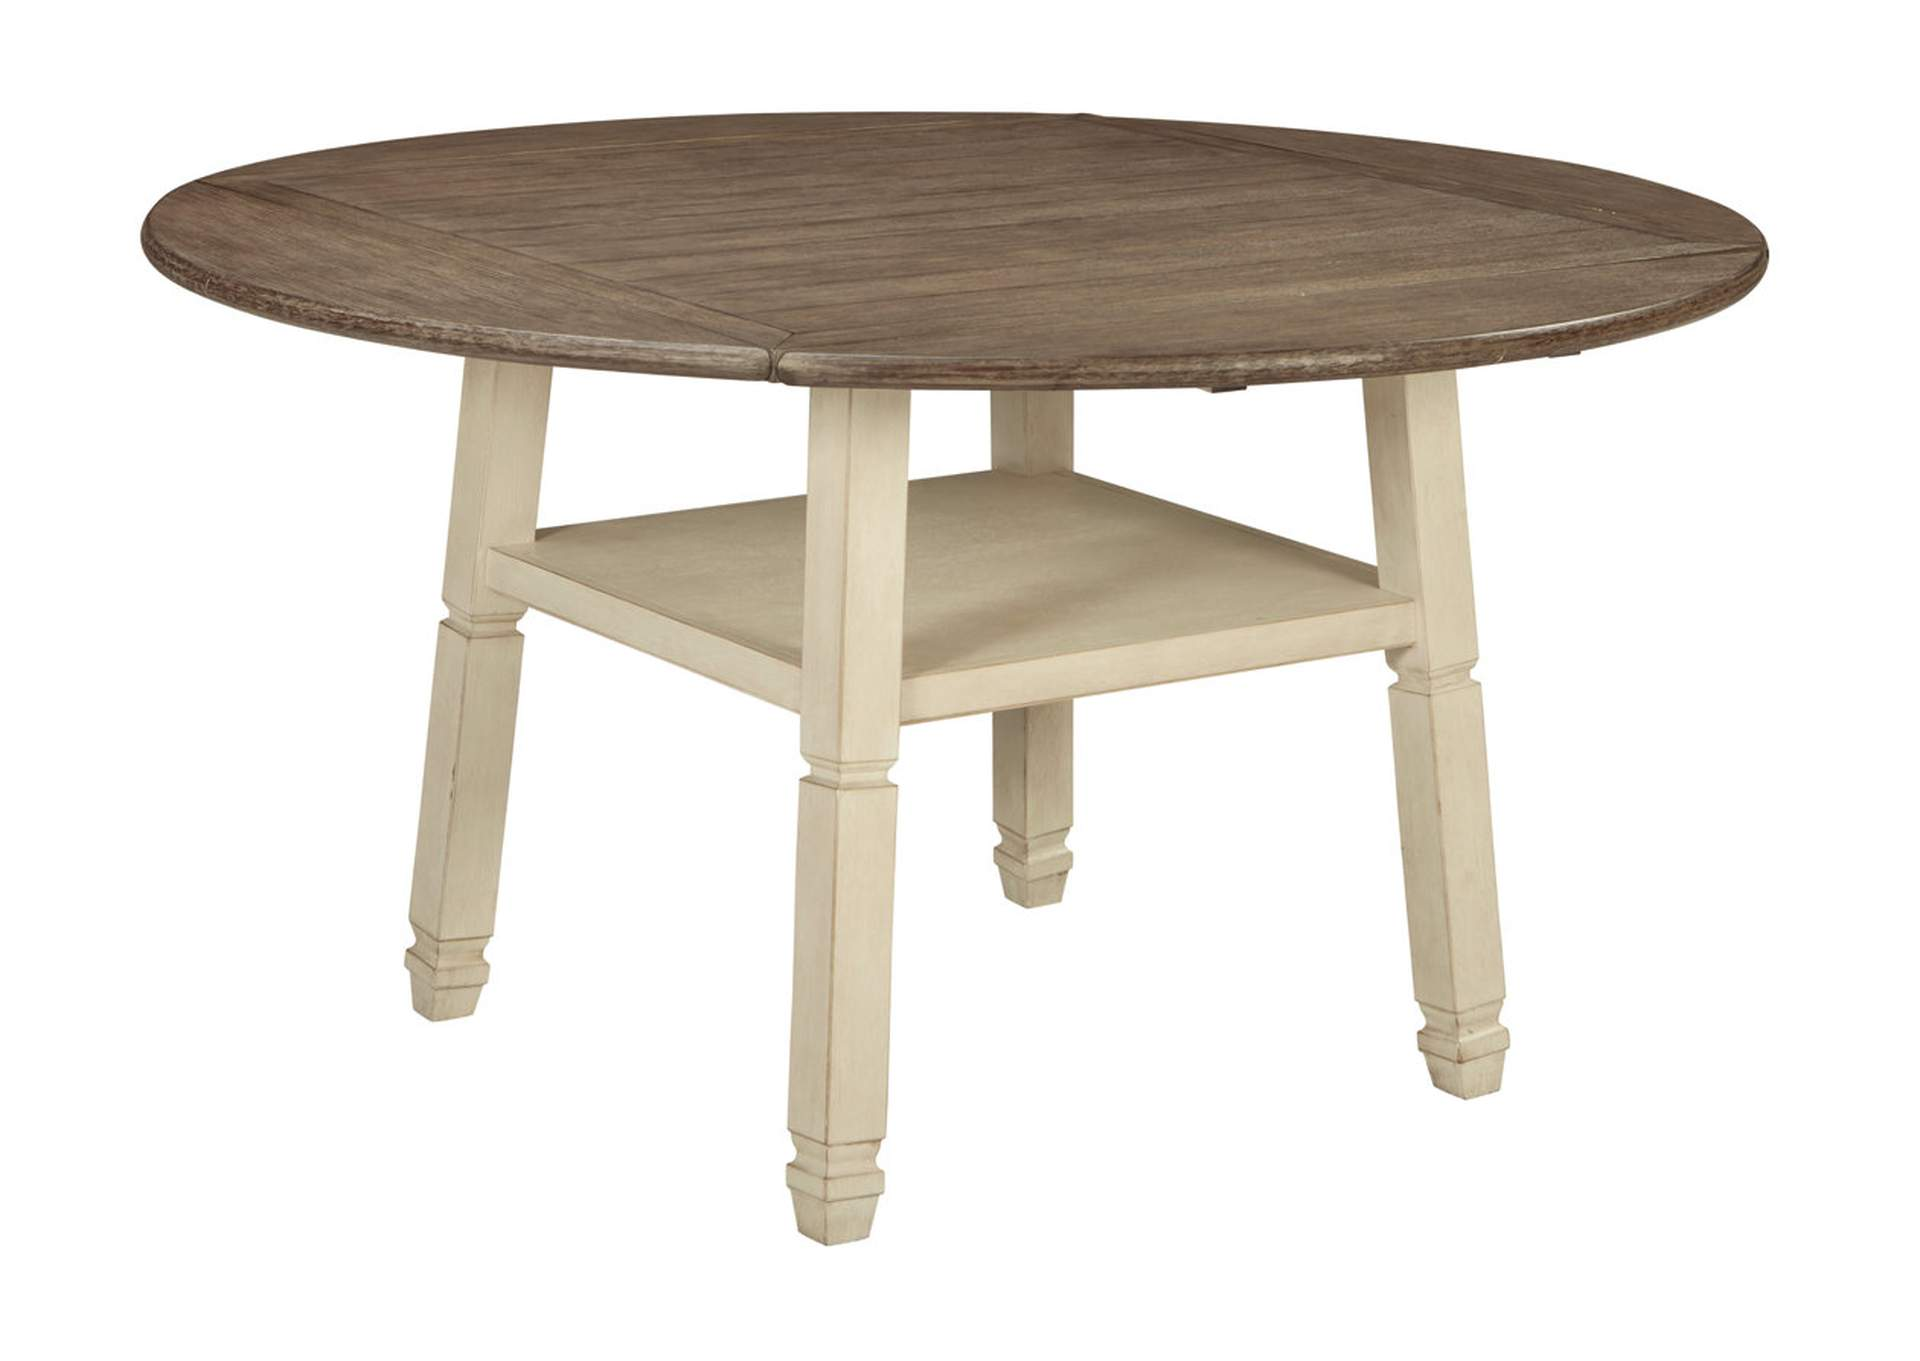 Bolanburg Antique White Round Drop-Leaf Counter Height Table,Signature Design By Ashley